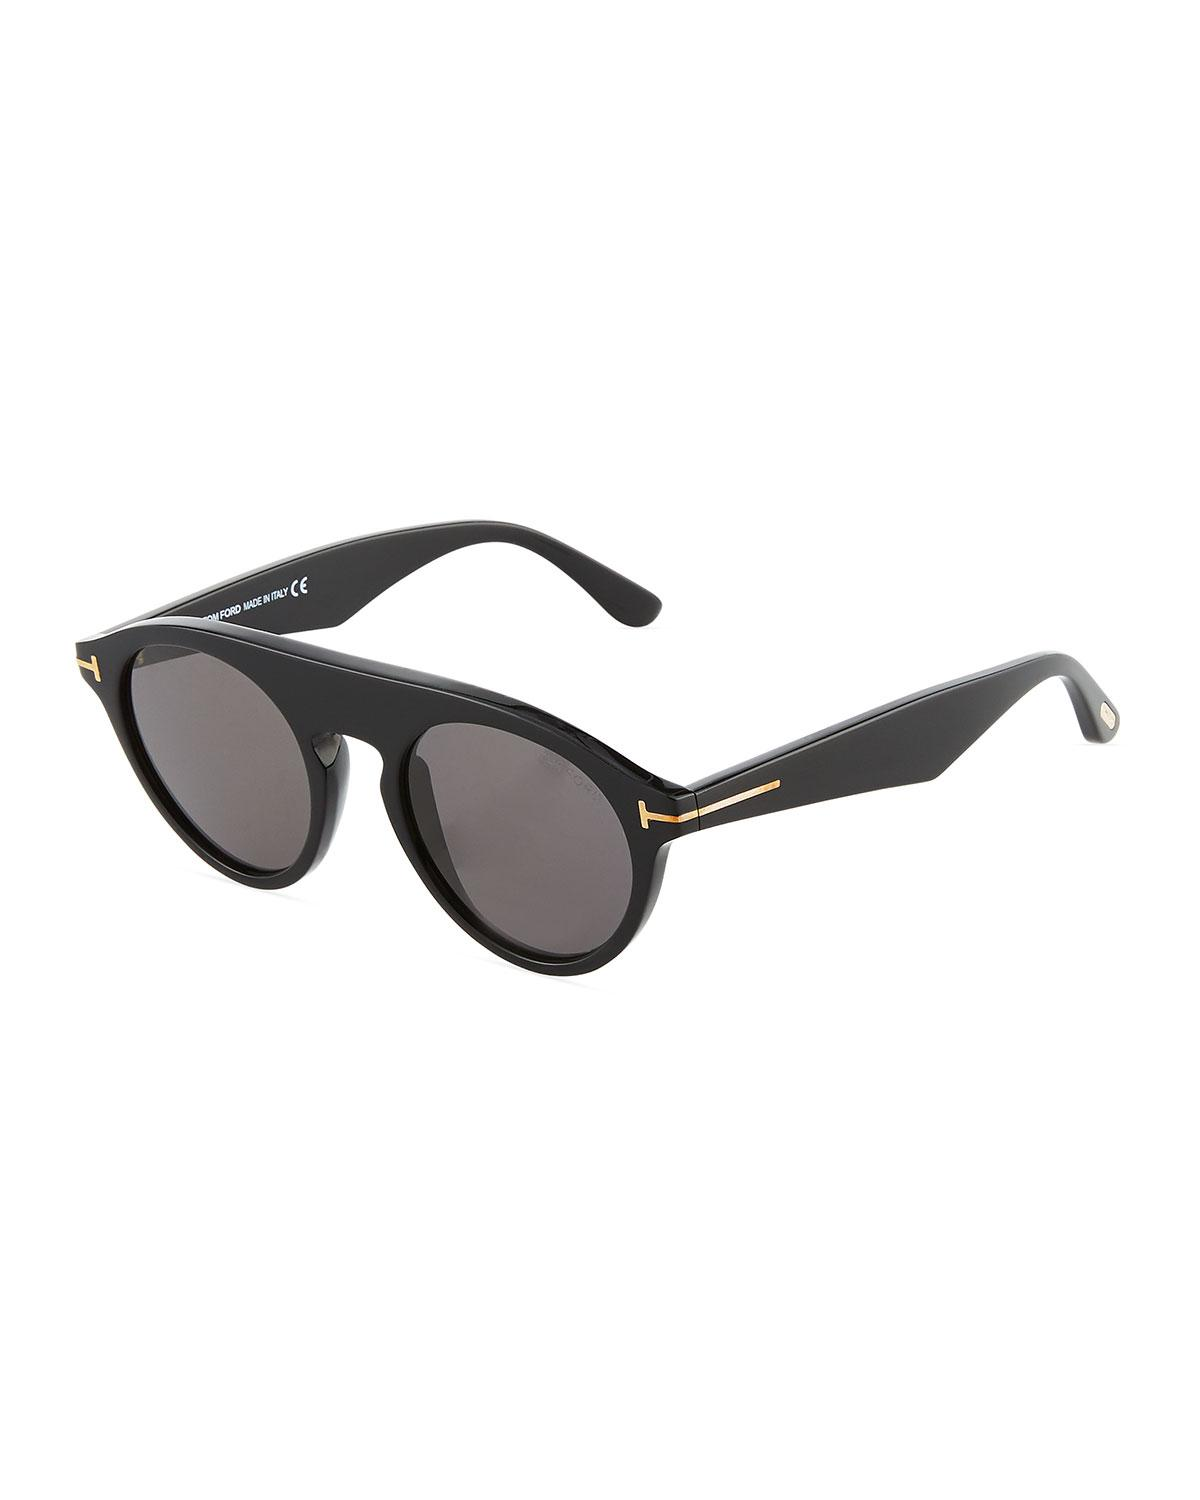 7fbca6bc95 Tom Ford Christopher Semi-shield Acetate Sunglasses in Black - Lyst